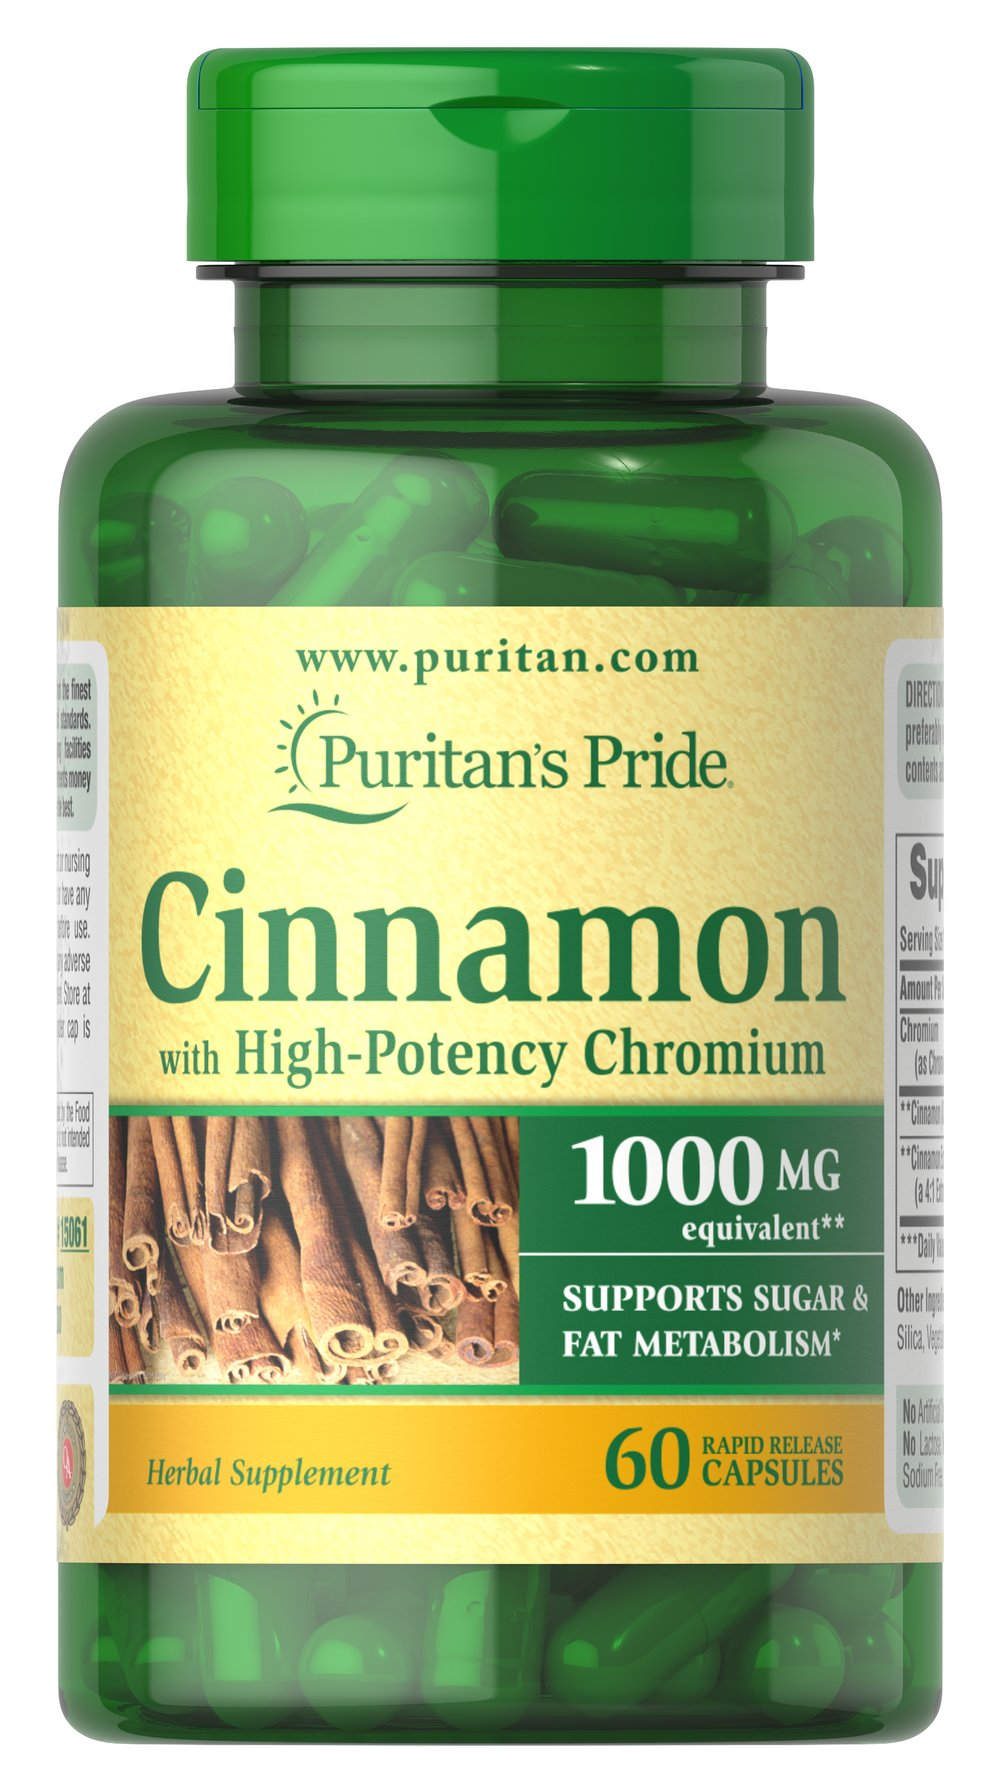 Cinnamon Complex with High Potency Chromium  60 Capsules 1000 mg $9.79